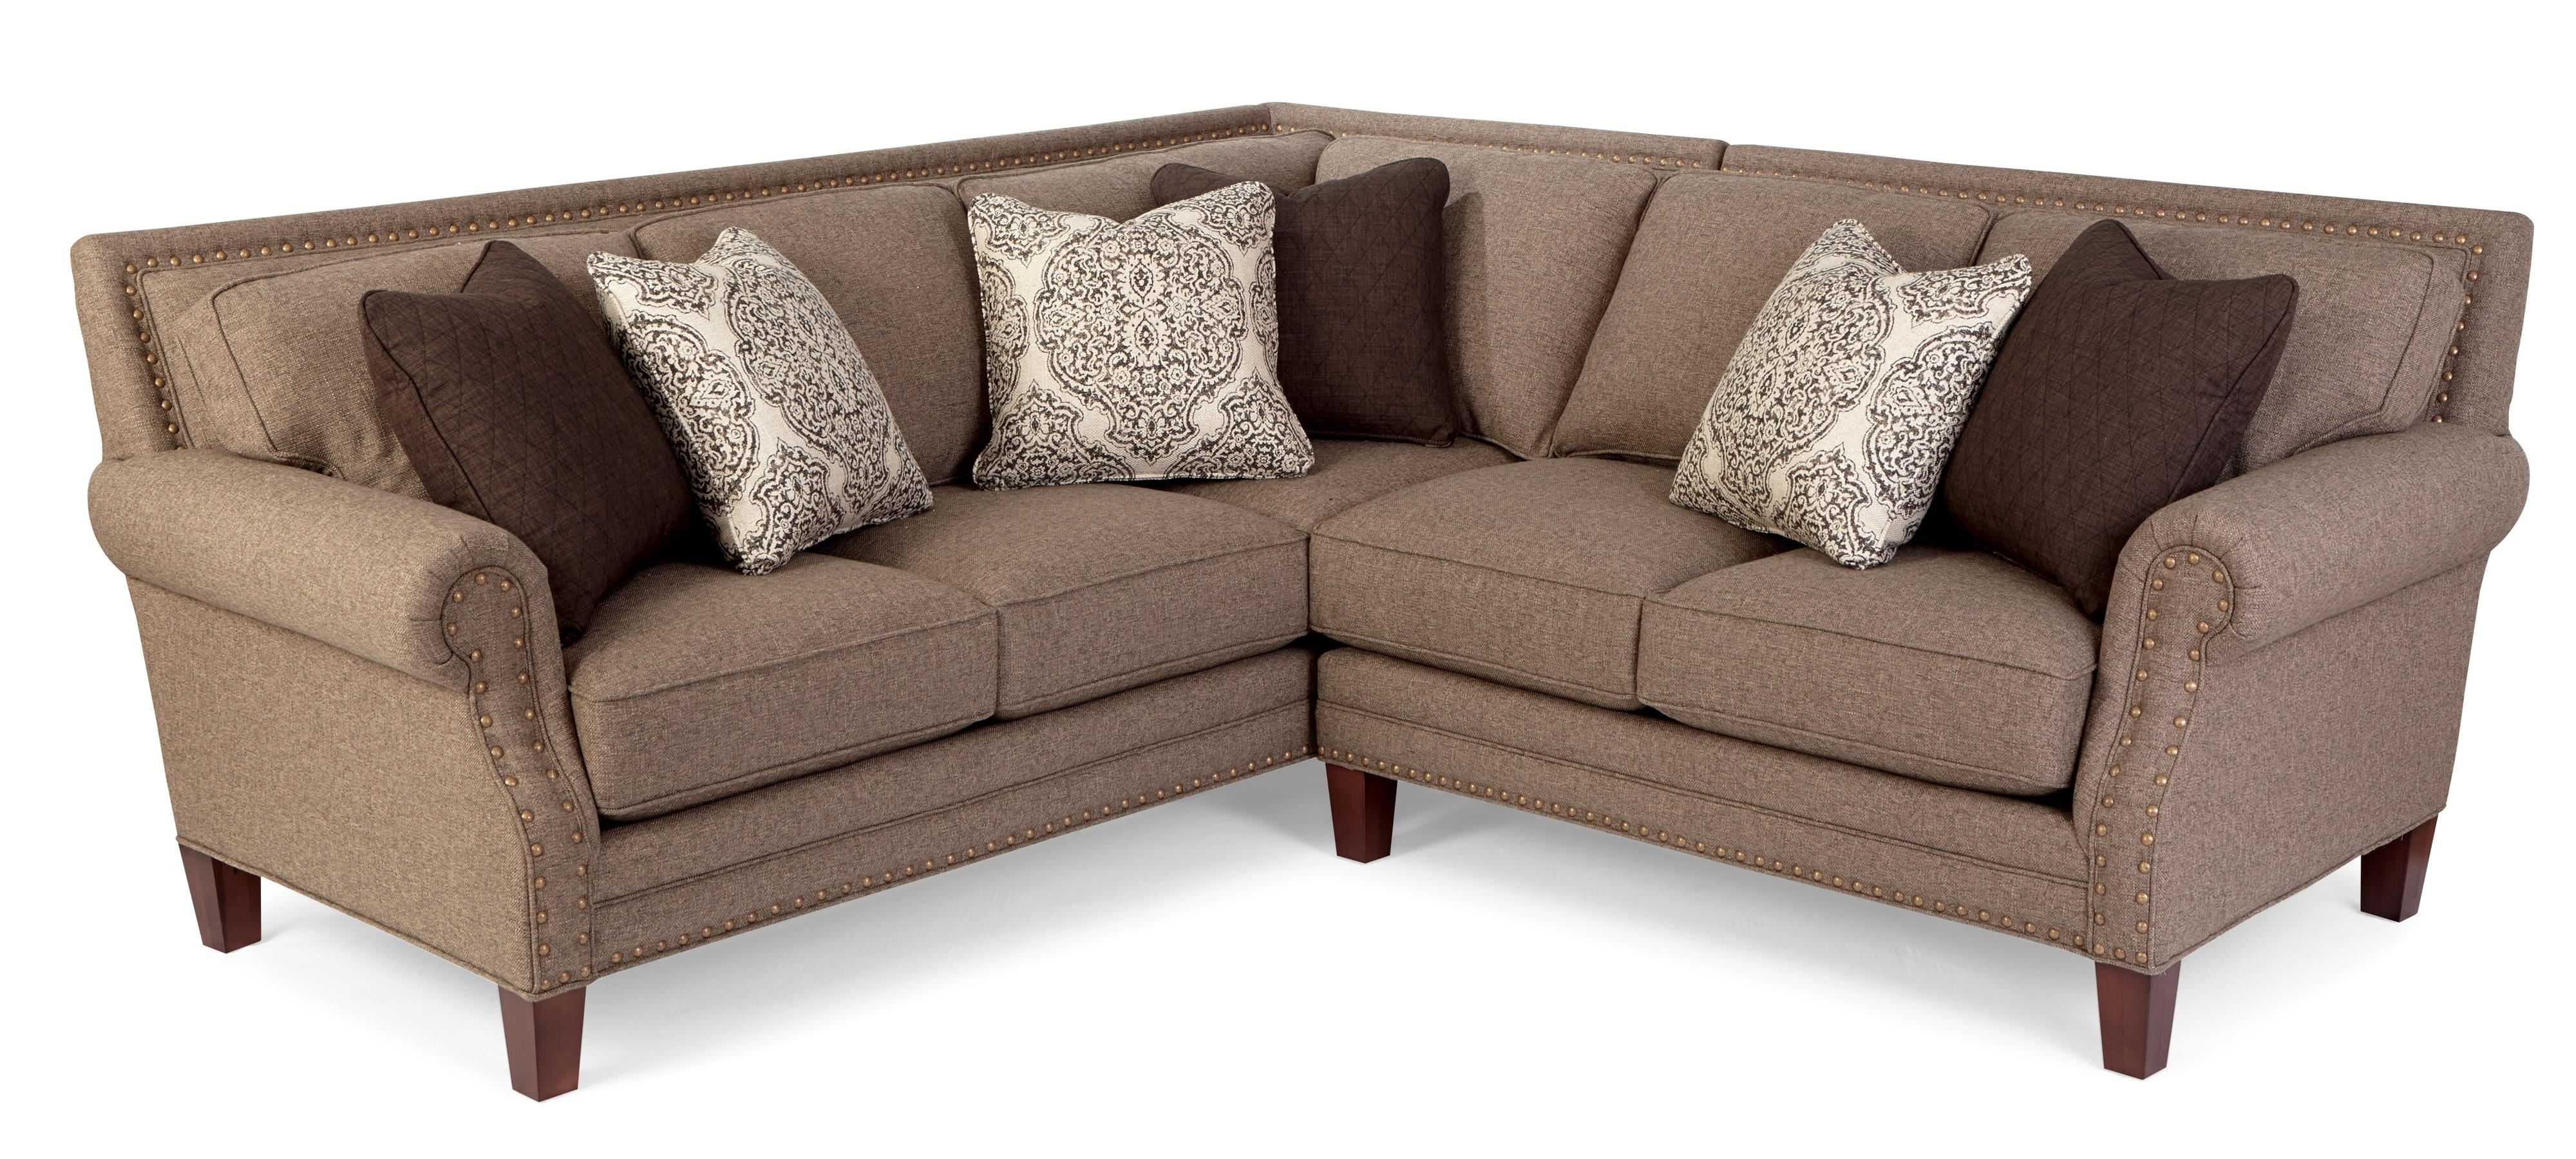 Two Piece Sectional Sofa With Rolled Arms And Light Brass Within Best And Newest Sectional Sofas With Nailheads (View 6 of 15)